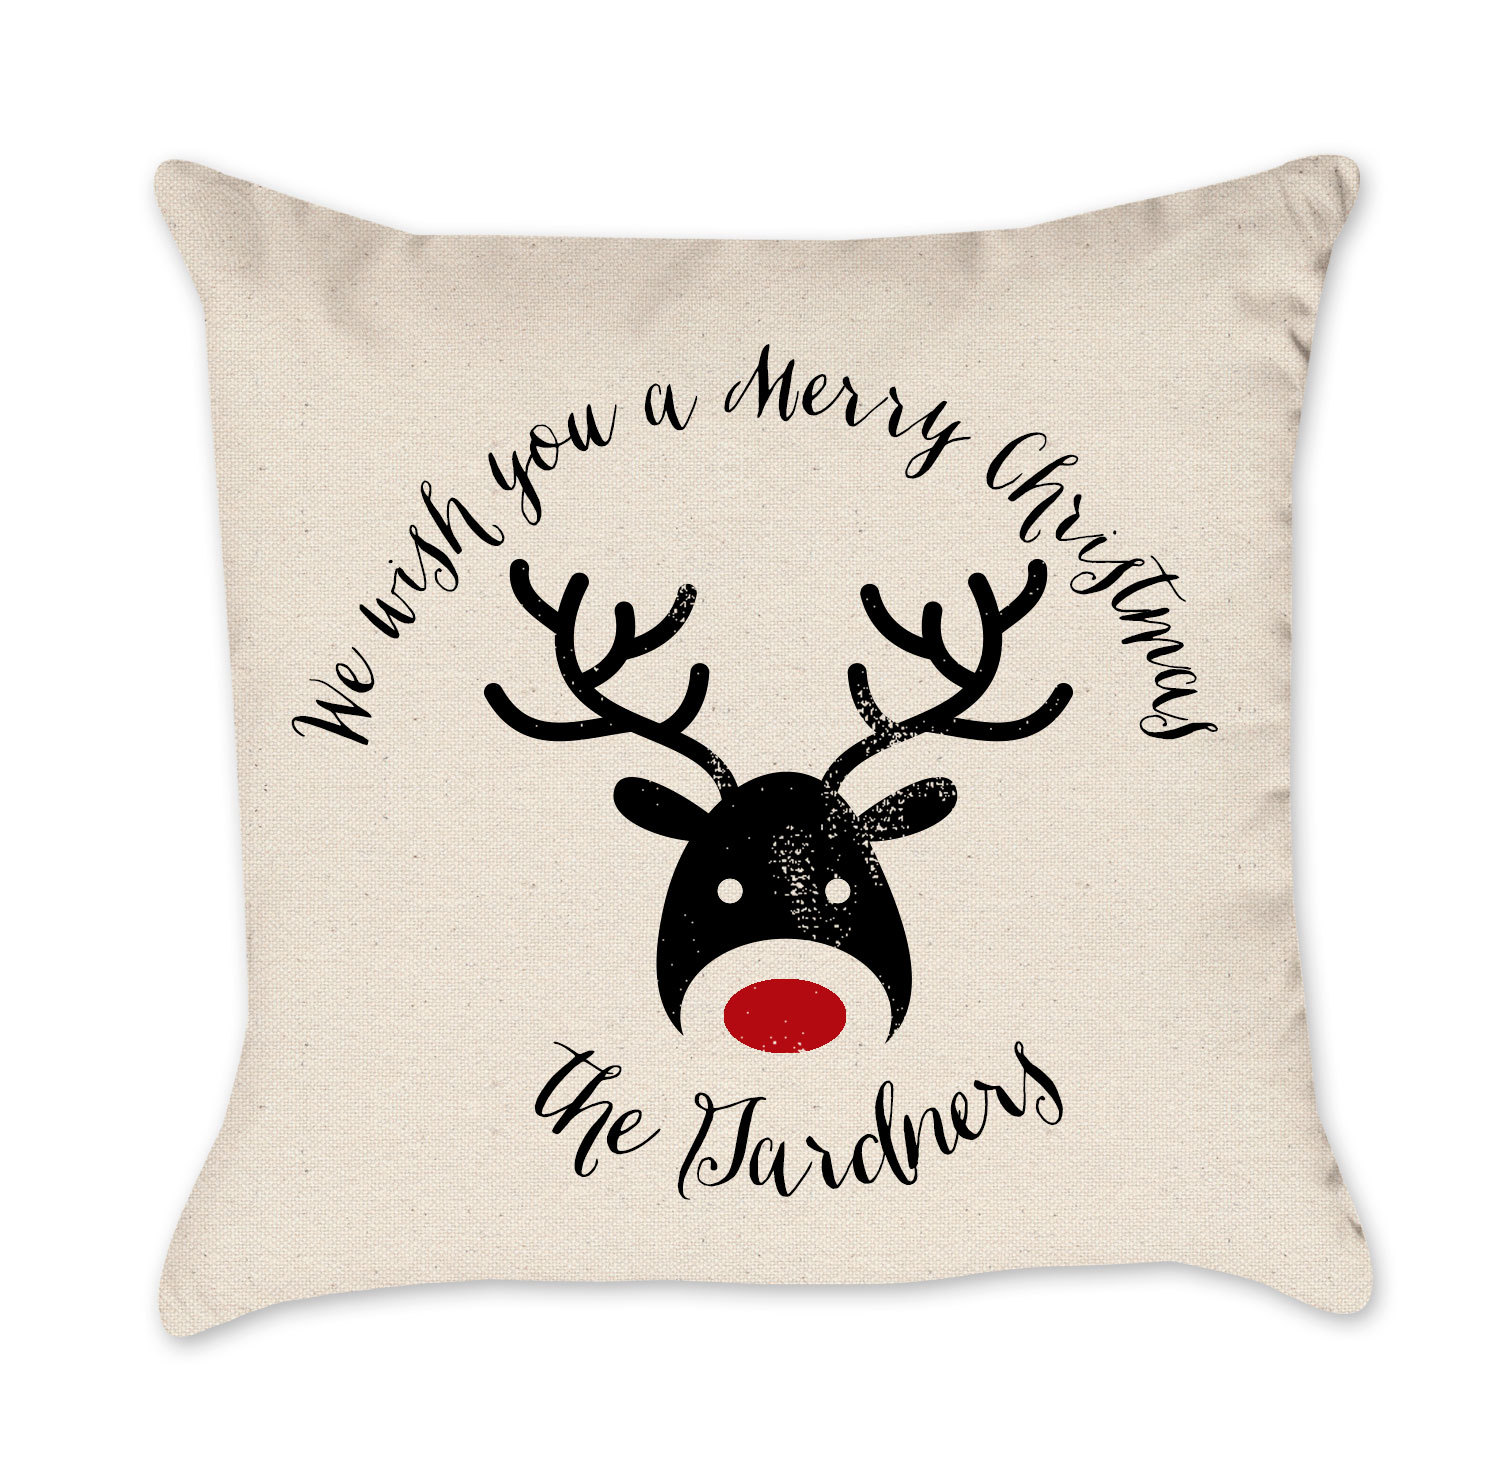 Wonderful Christmas Pillows Part - 14: We Wish You A Merry Xmas